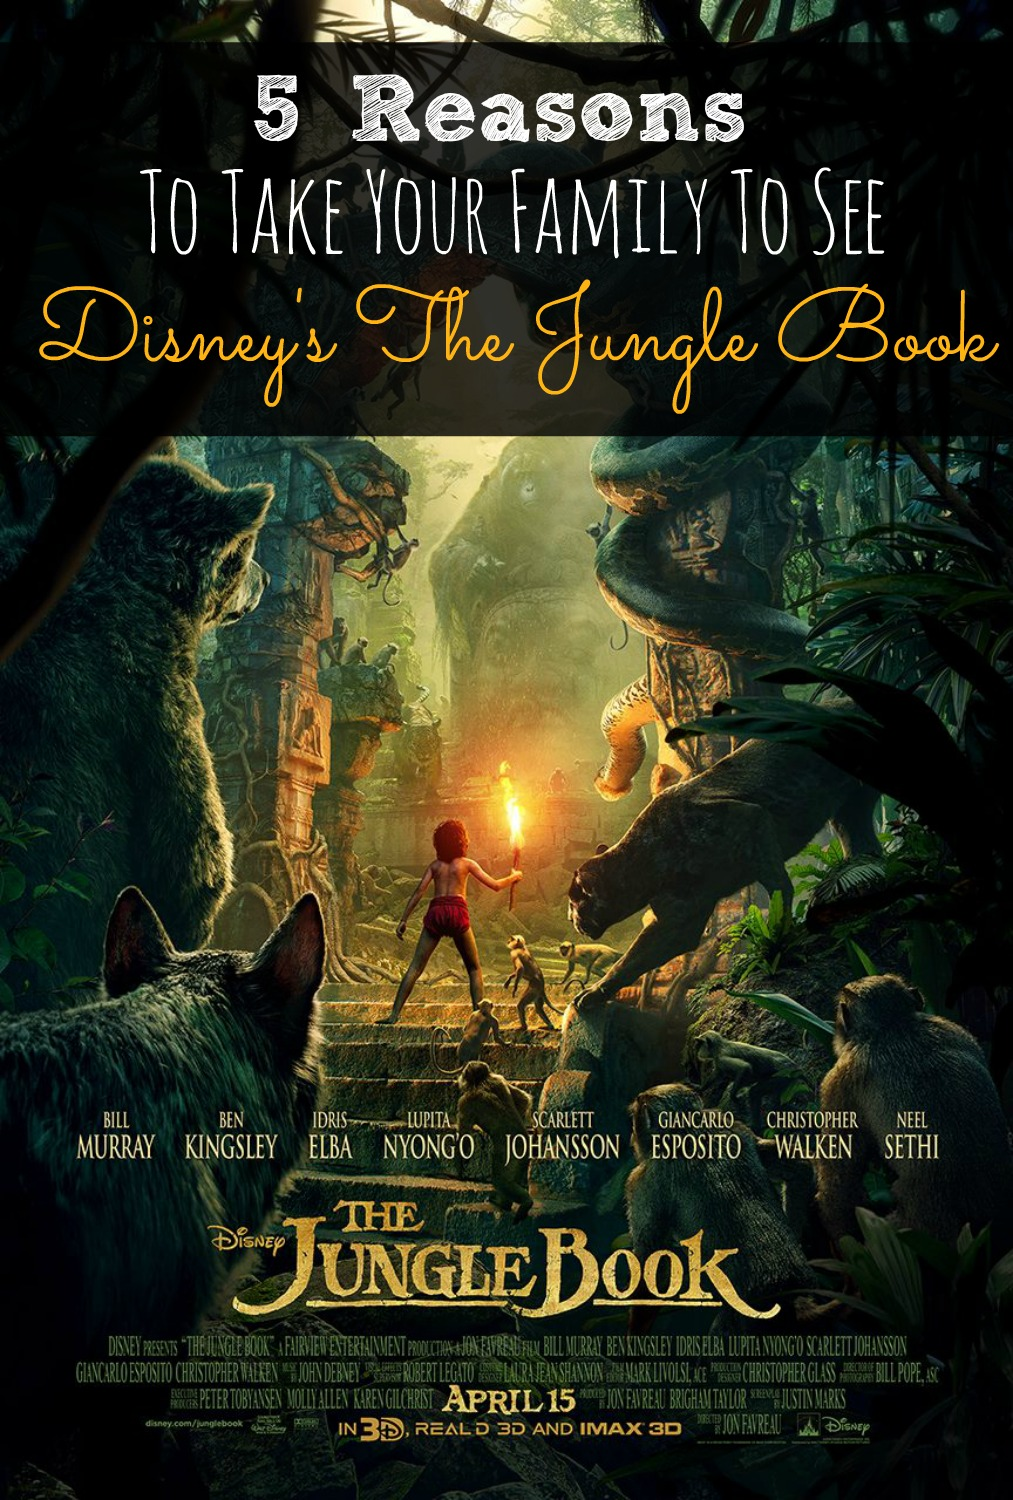 5 Reasons To Take Your Family To See The Jungle Book